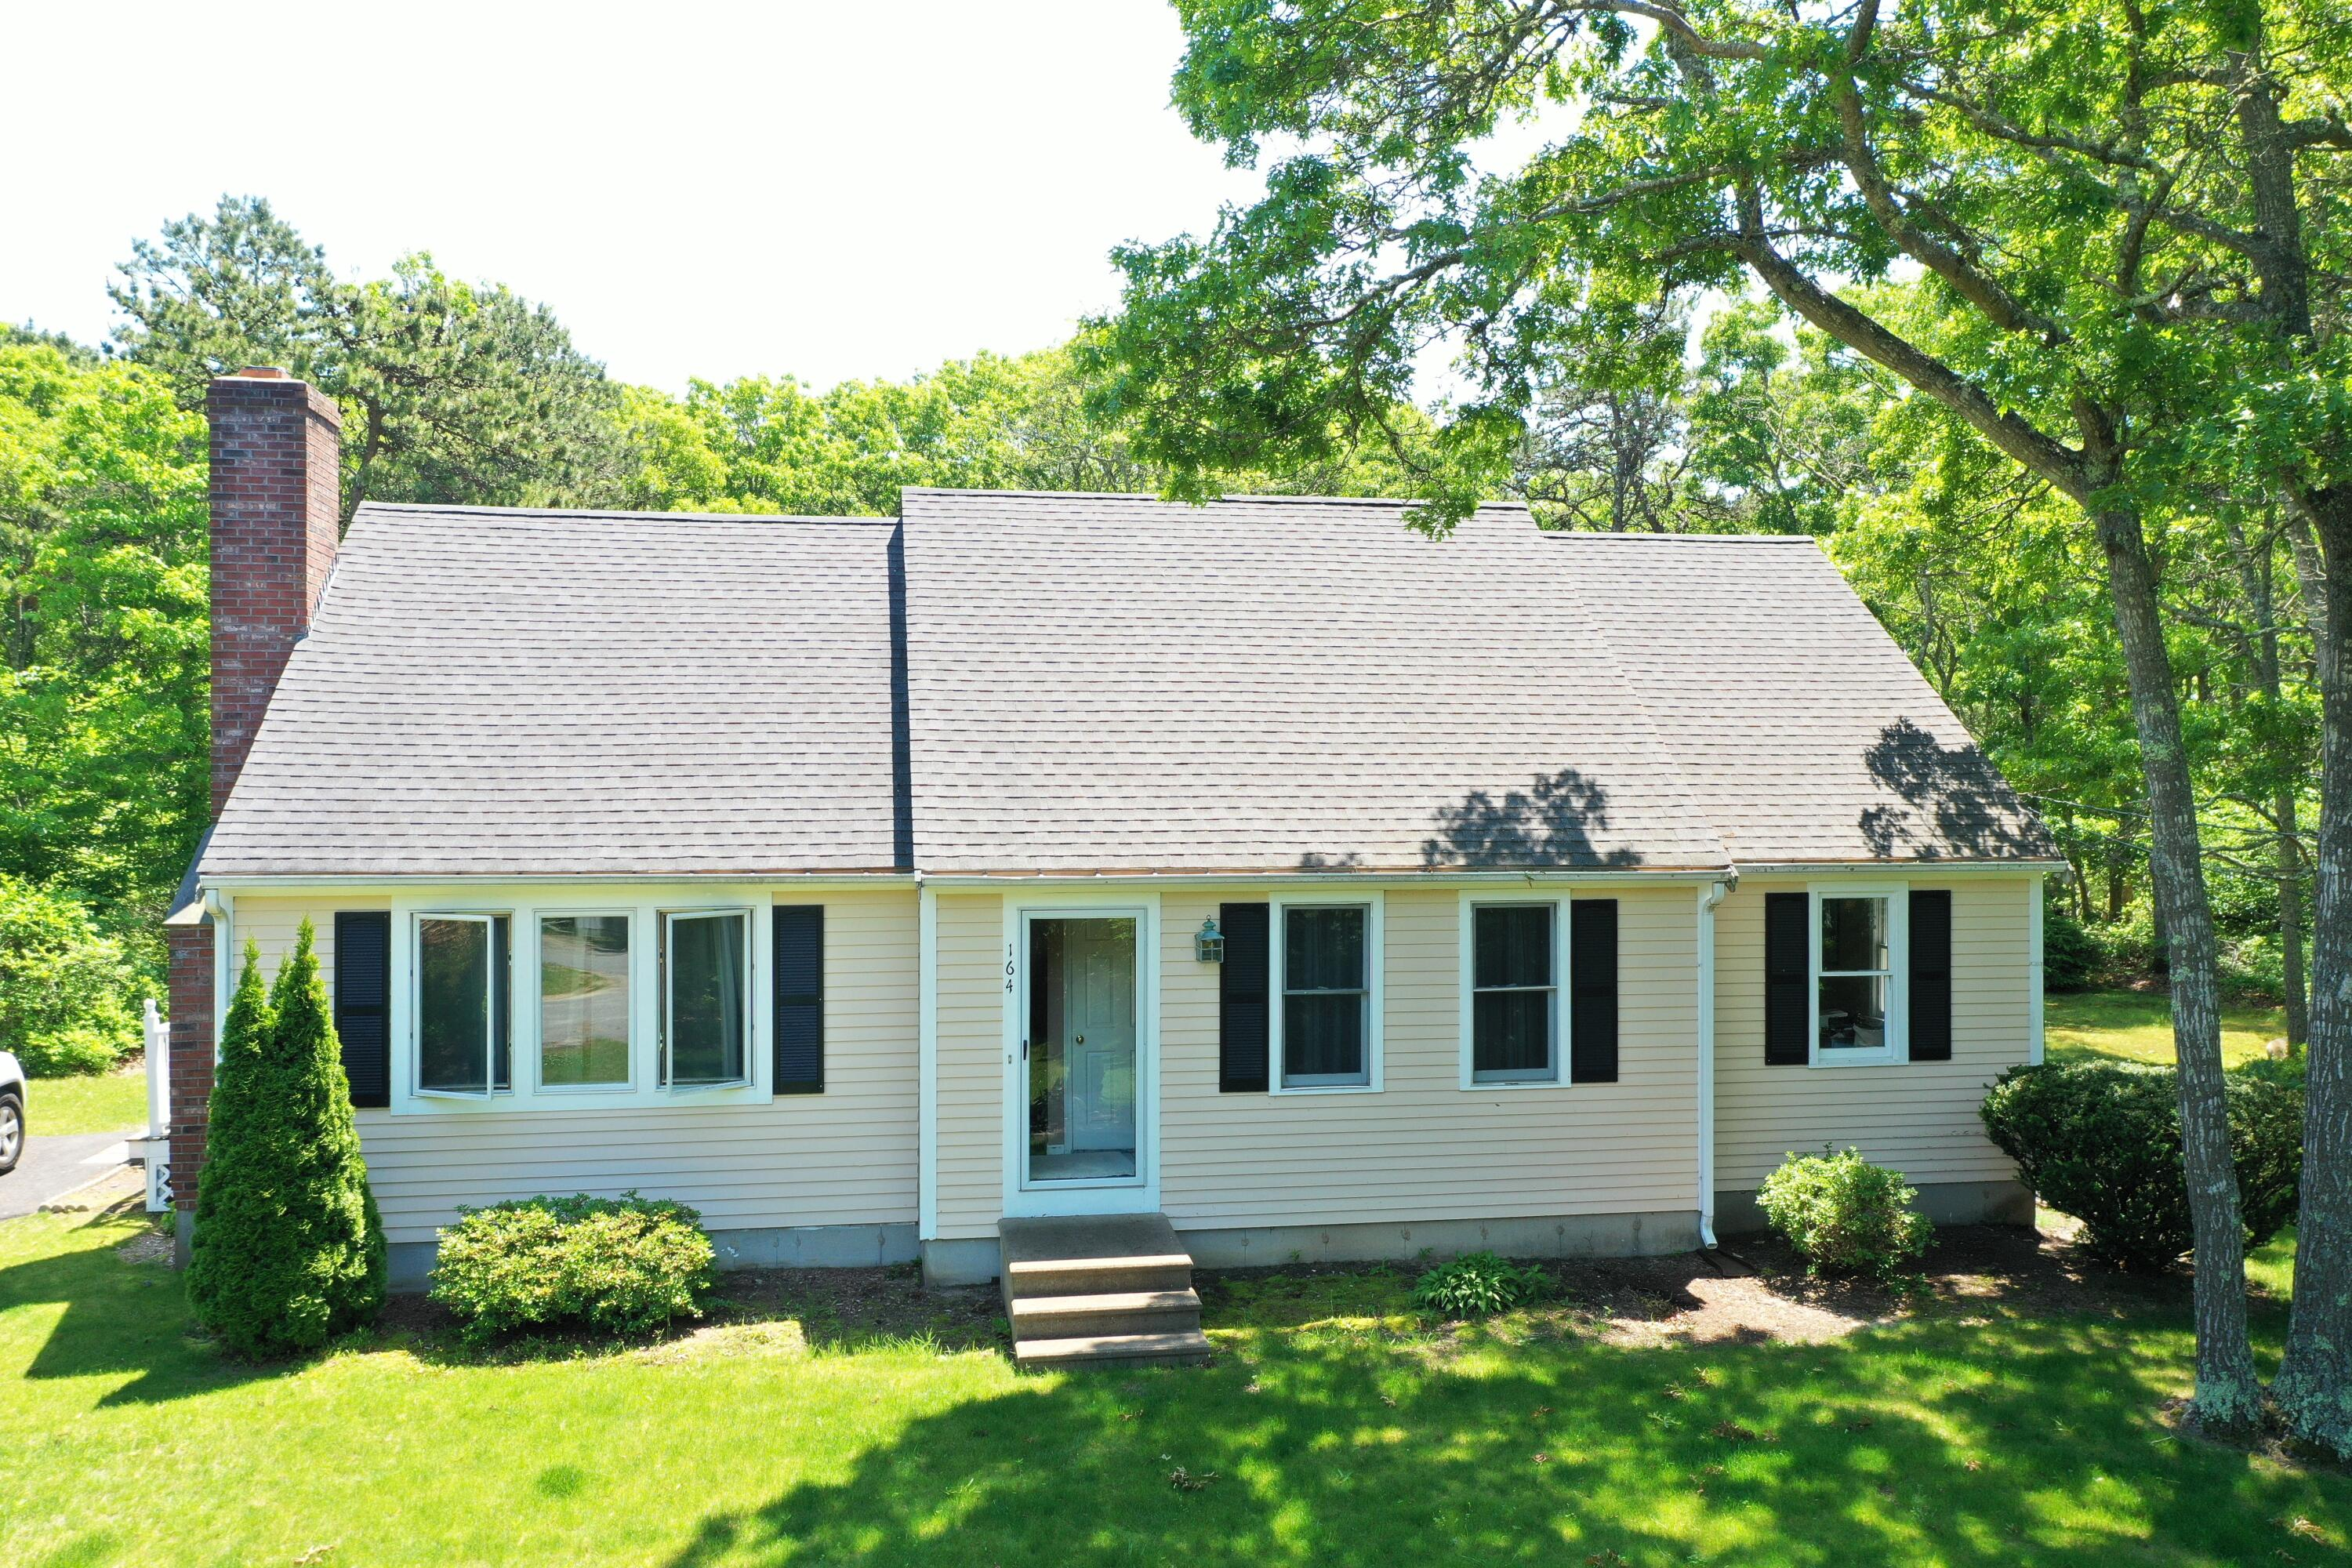 164 Lauries Lane, Marstons Mills MA, 02648 details